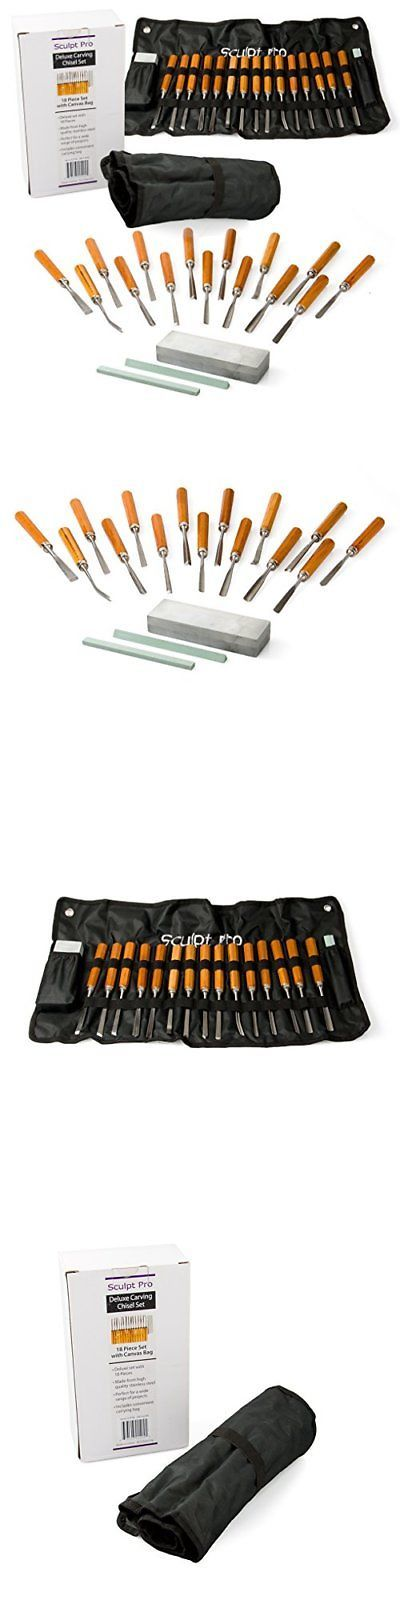 Wood Carving Hand Tools 160677: Wood Carving Chisel Set- Professional Wood Carving Tools Deluxe 18 Pieces Wit... -> BUY IT NOW ONLY: $34.59 on eBay!